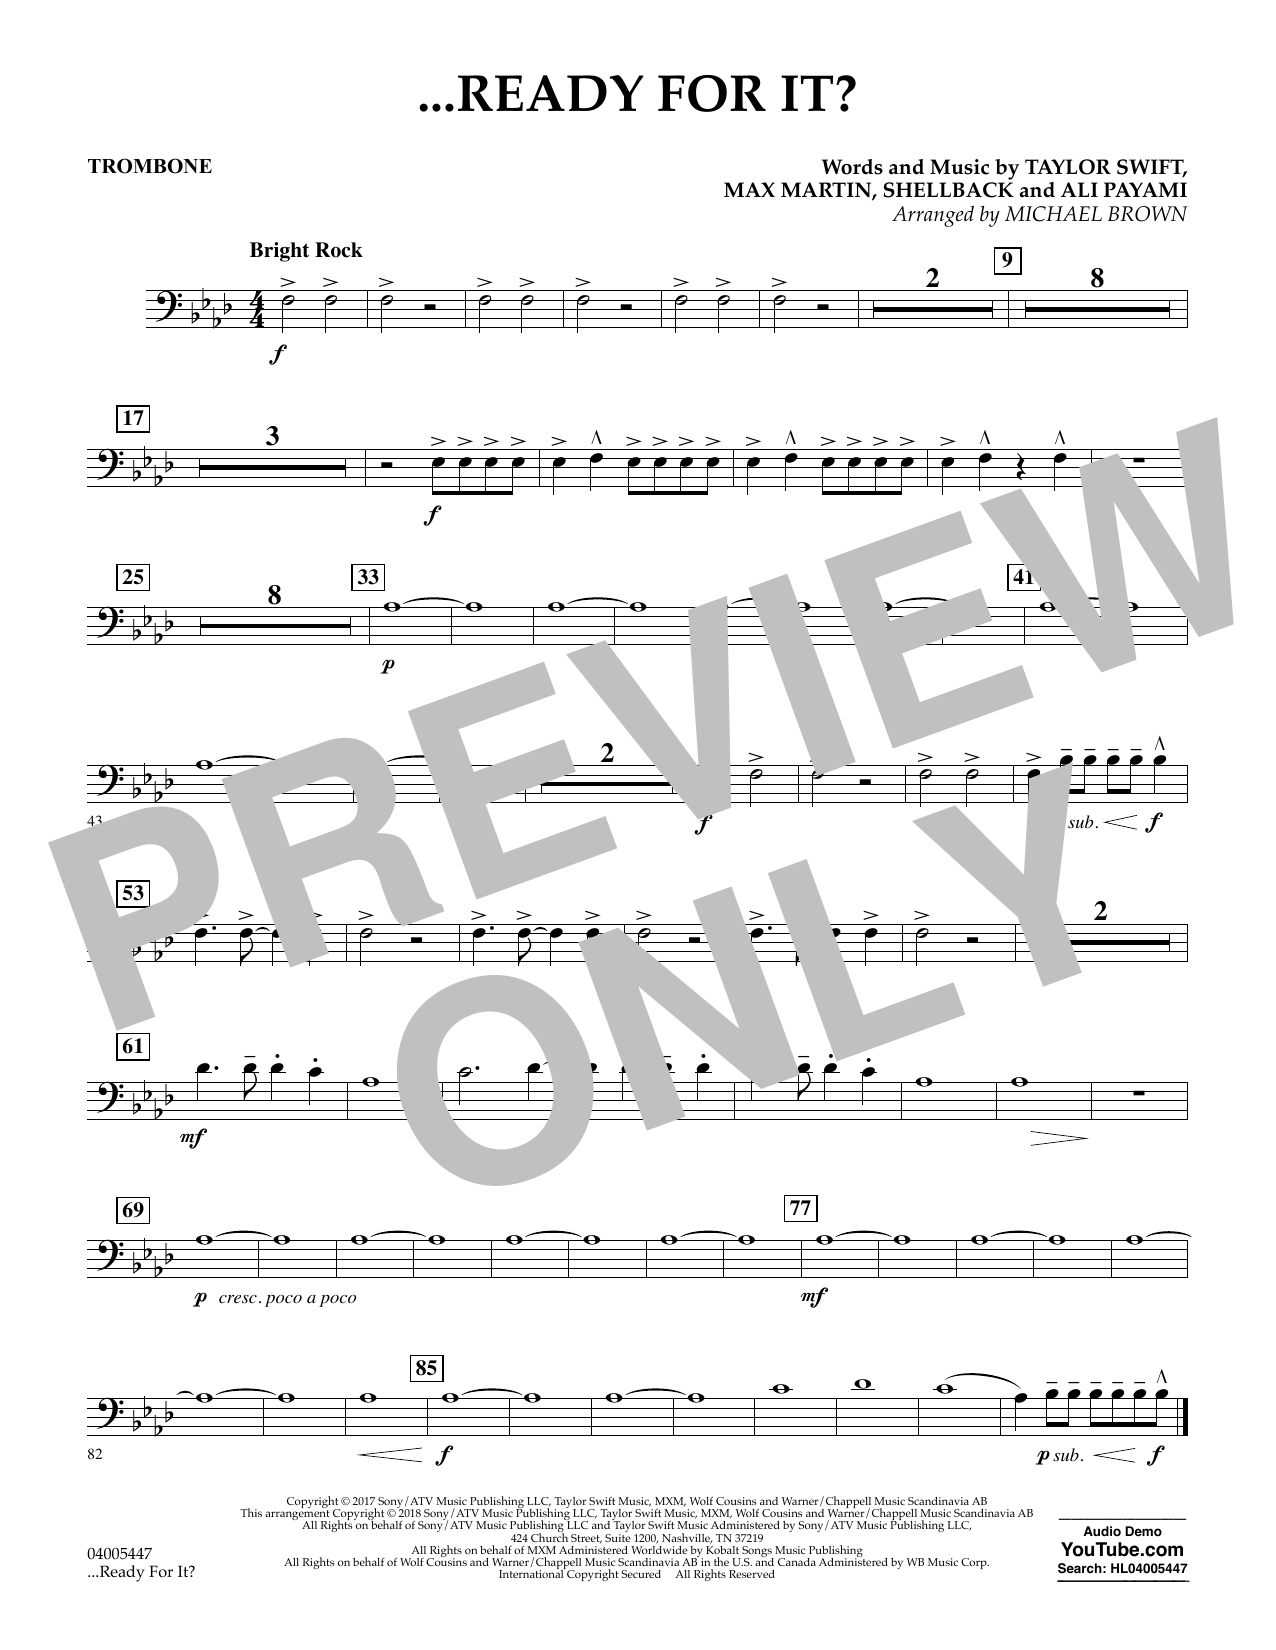 Michael Brown ...Ready for It? - Trombone sheet music notes and chords. Download Printable PDF.